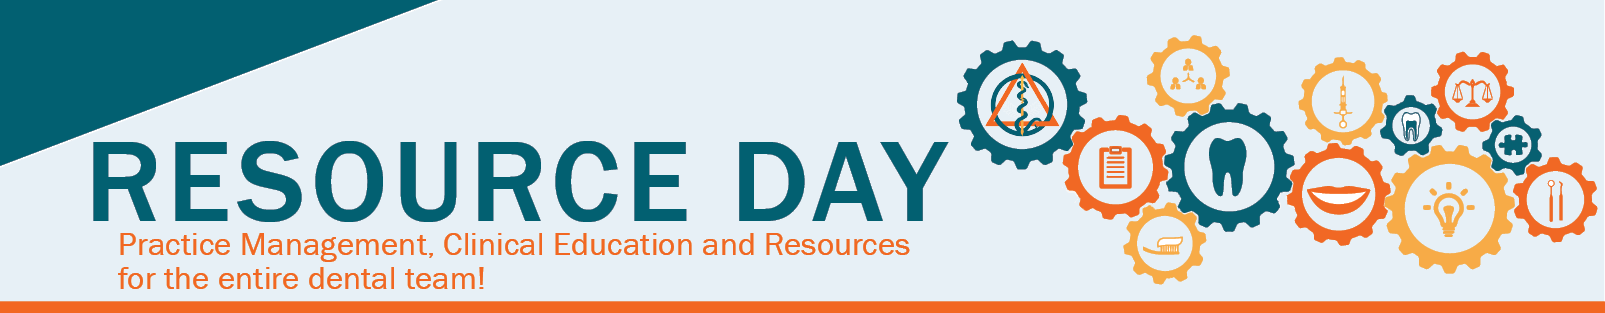 Resource Day 2018 Cvent header